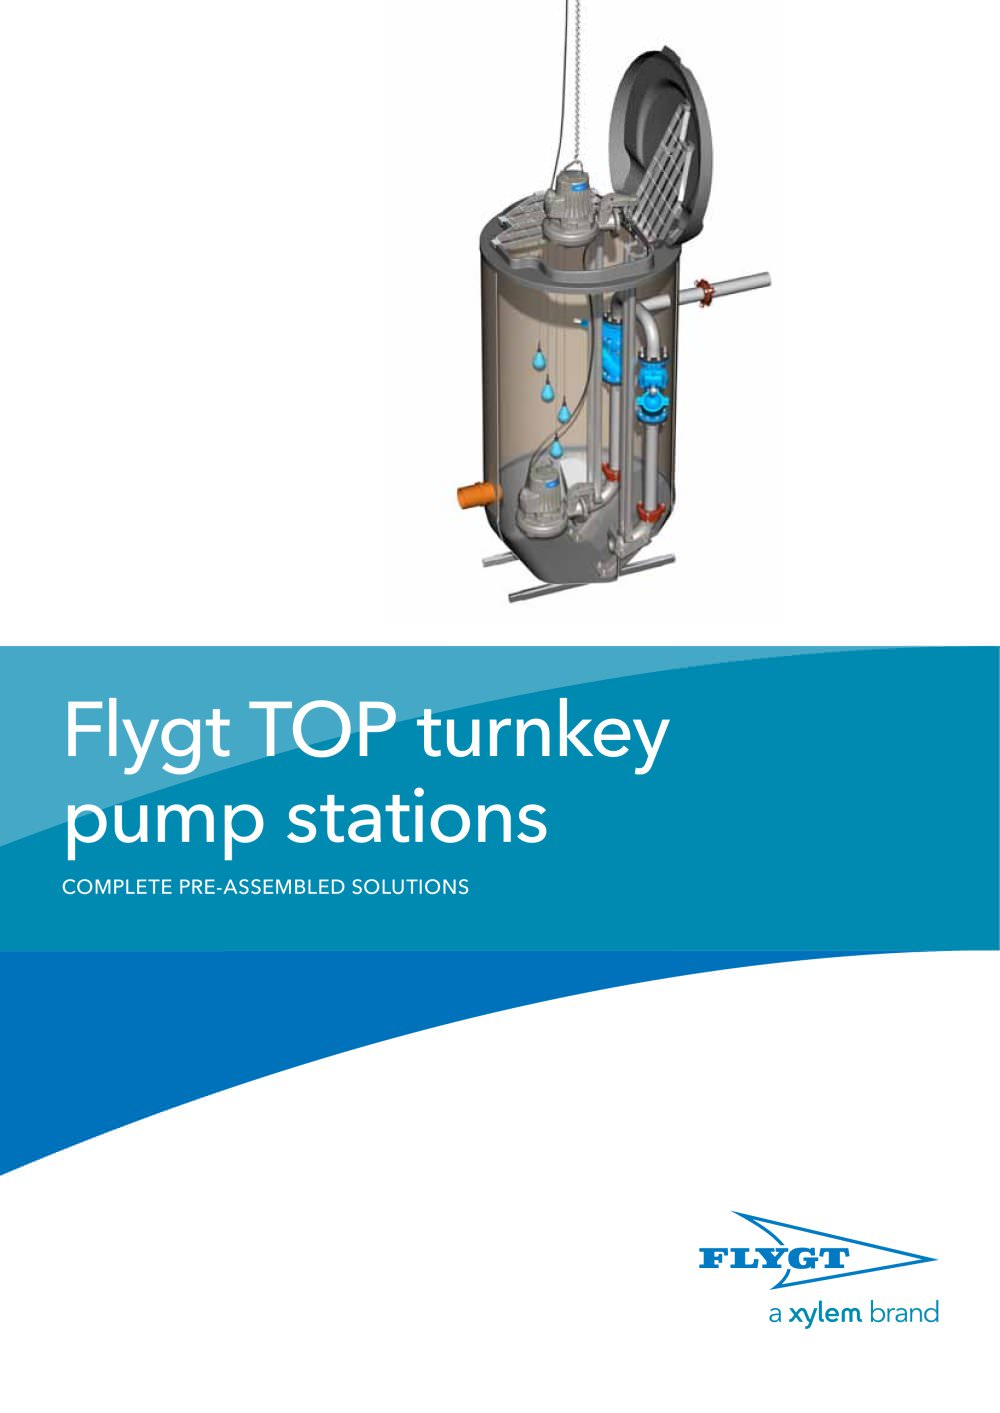 flygt top turnkey pump station 362569_1b?resize=665%2C940 flygt wiring diagrams sandpiper wiring diagram, panasonic wiring flojet wiring diagram at crackthecode.co